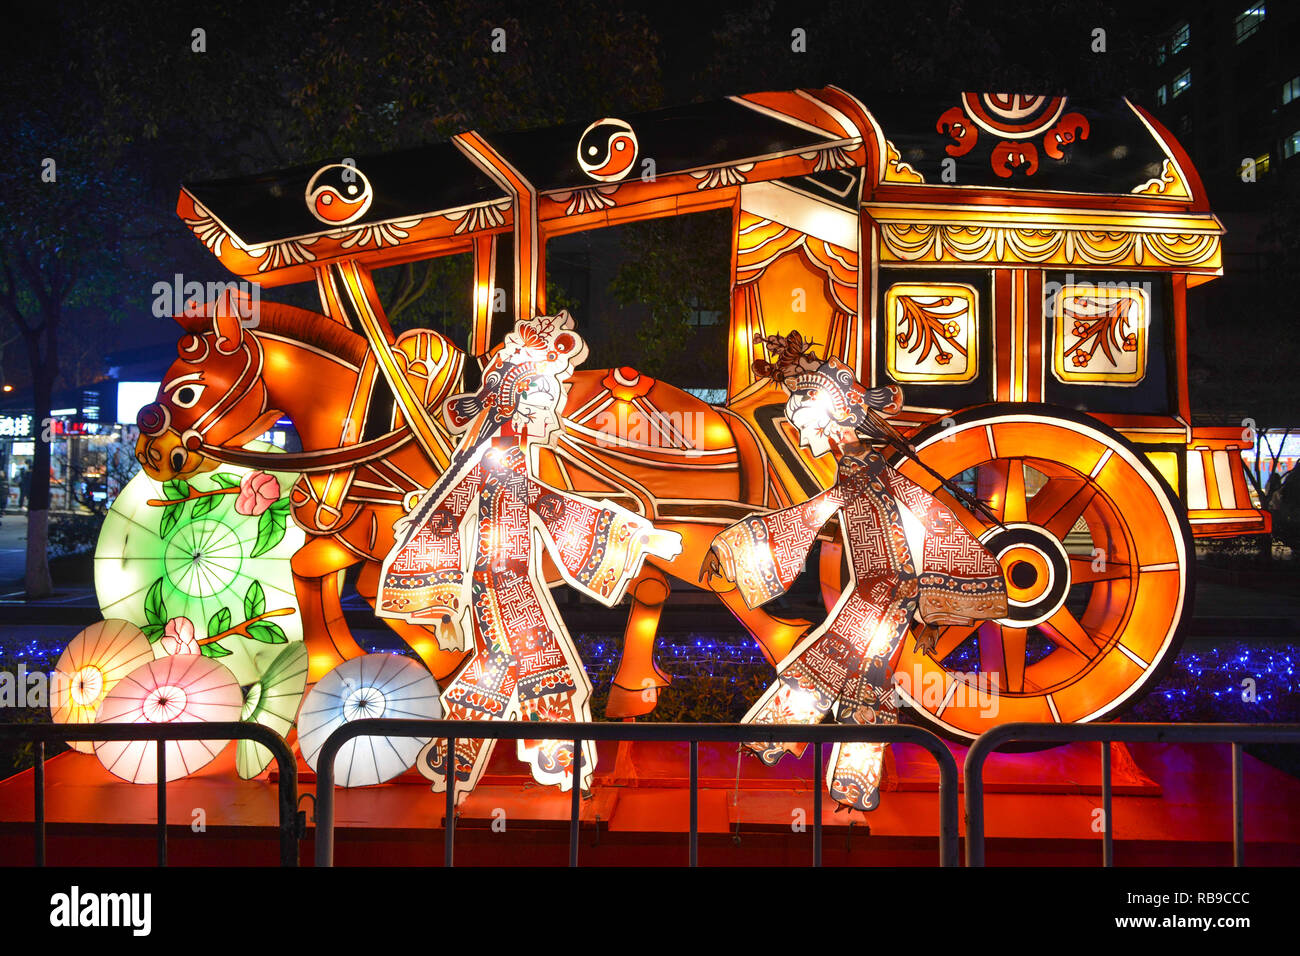 Nanjing, Nanjing, China. 8th Jan, 2019. Nanjing, CHINA-The light show can be seen at the Laomendong Scenic Area in Nanjing, Jiangsu Province, marking the upcoming Spring Festival. Credit: SIPA Asia/ZUMA Wire/Alamy Live News - Stock Image